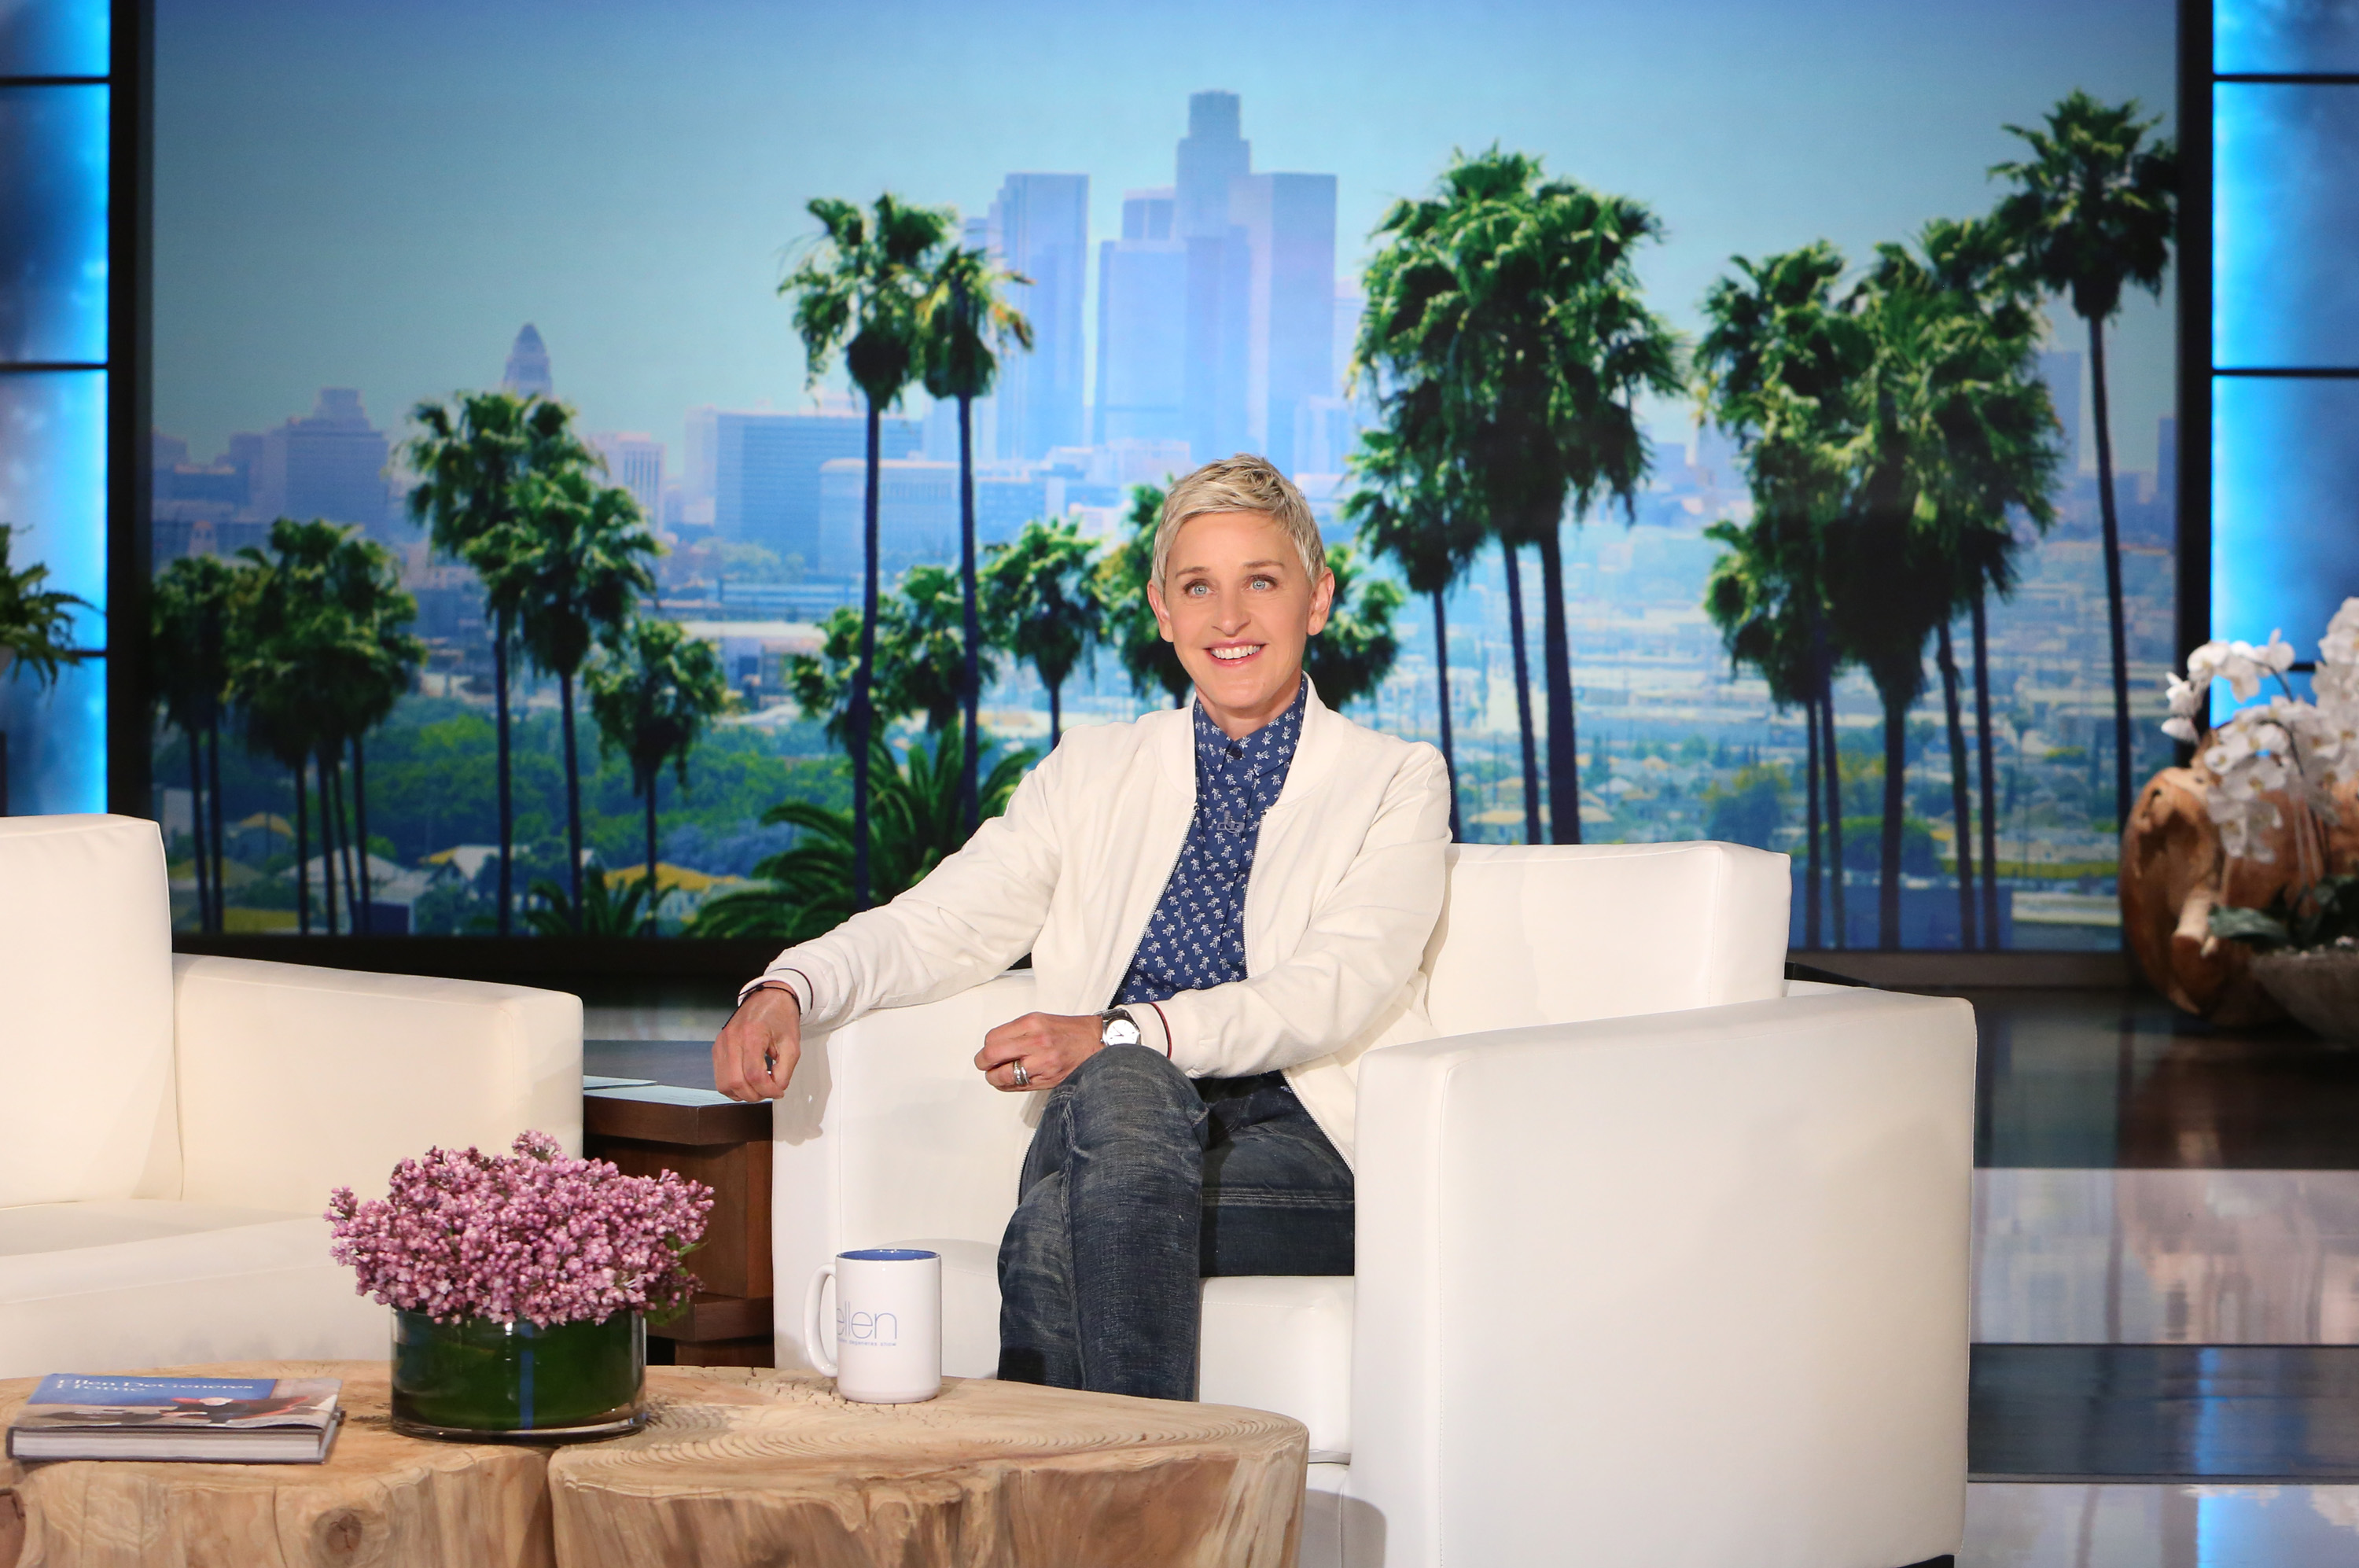 Ellen degeneres launches new digital network and unveils first original programming slate at - Ellen show new york ...